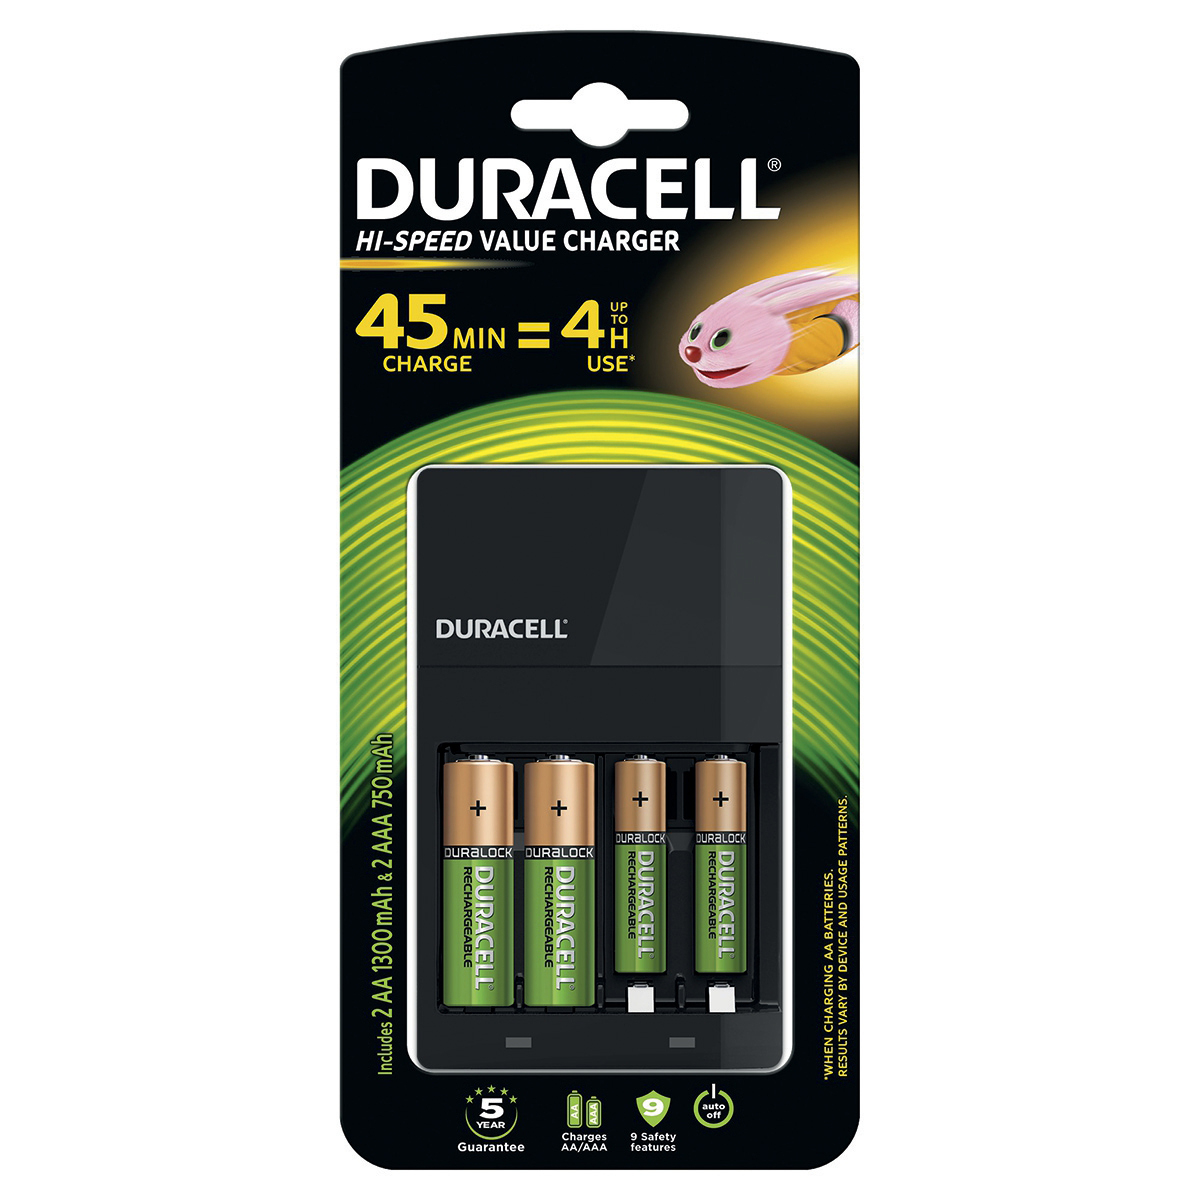 Duracell CEF14 Battery Charger Hi Speed for AA/AAA LED Charge Status Indicator Ref 81528873